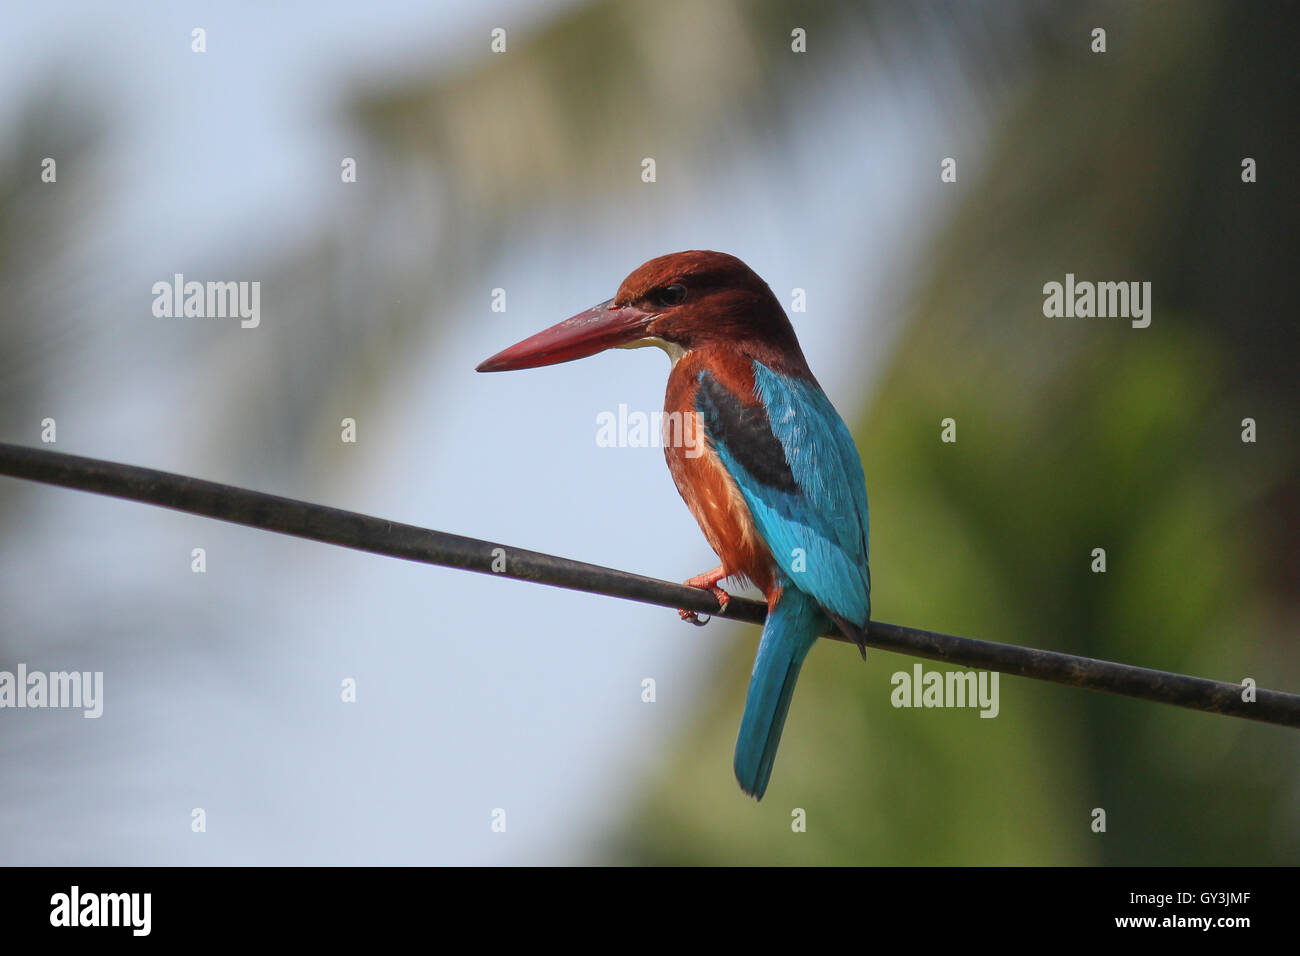 White-throated Kingfisher Halcyon smyrnensis beautiful blue bird perched on wire - Stock Image